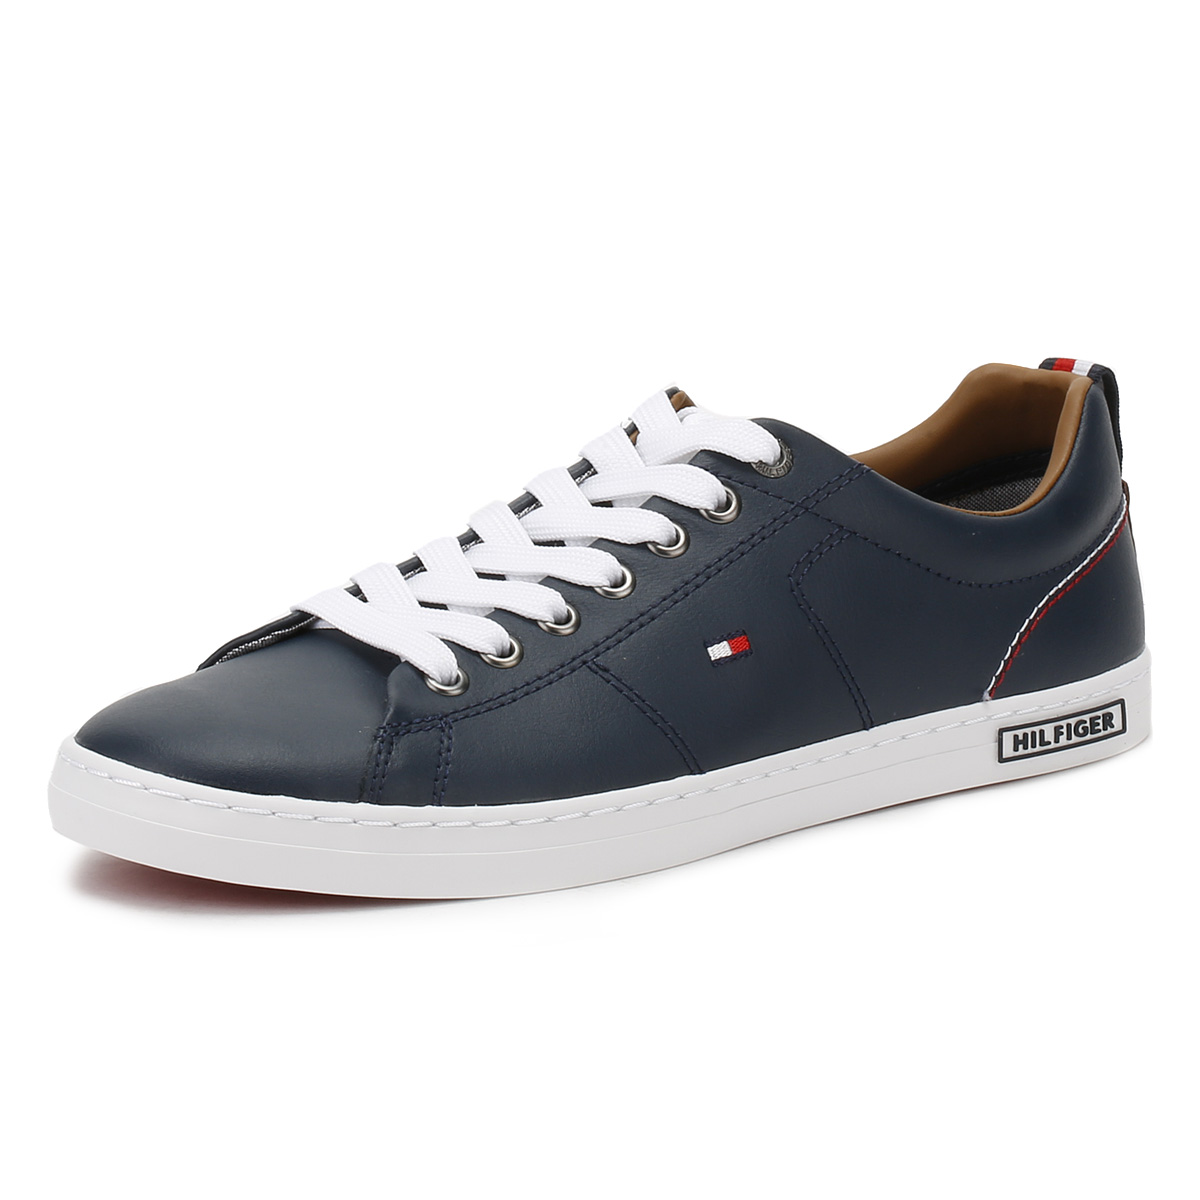 380ea4af7 Details about Tommy Hilfiger Mens Tommy Navy Blue Trainers Lace Up Sport  Casual Shoes K2285AY